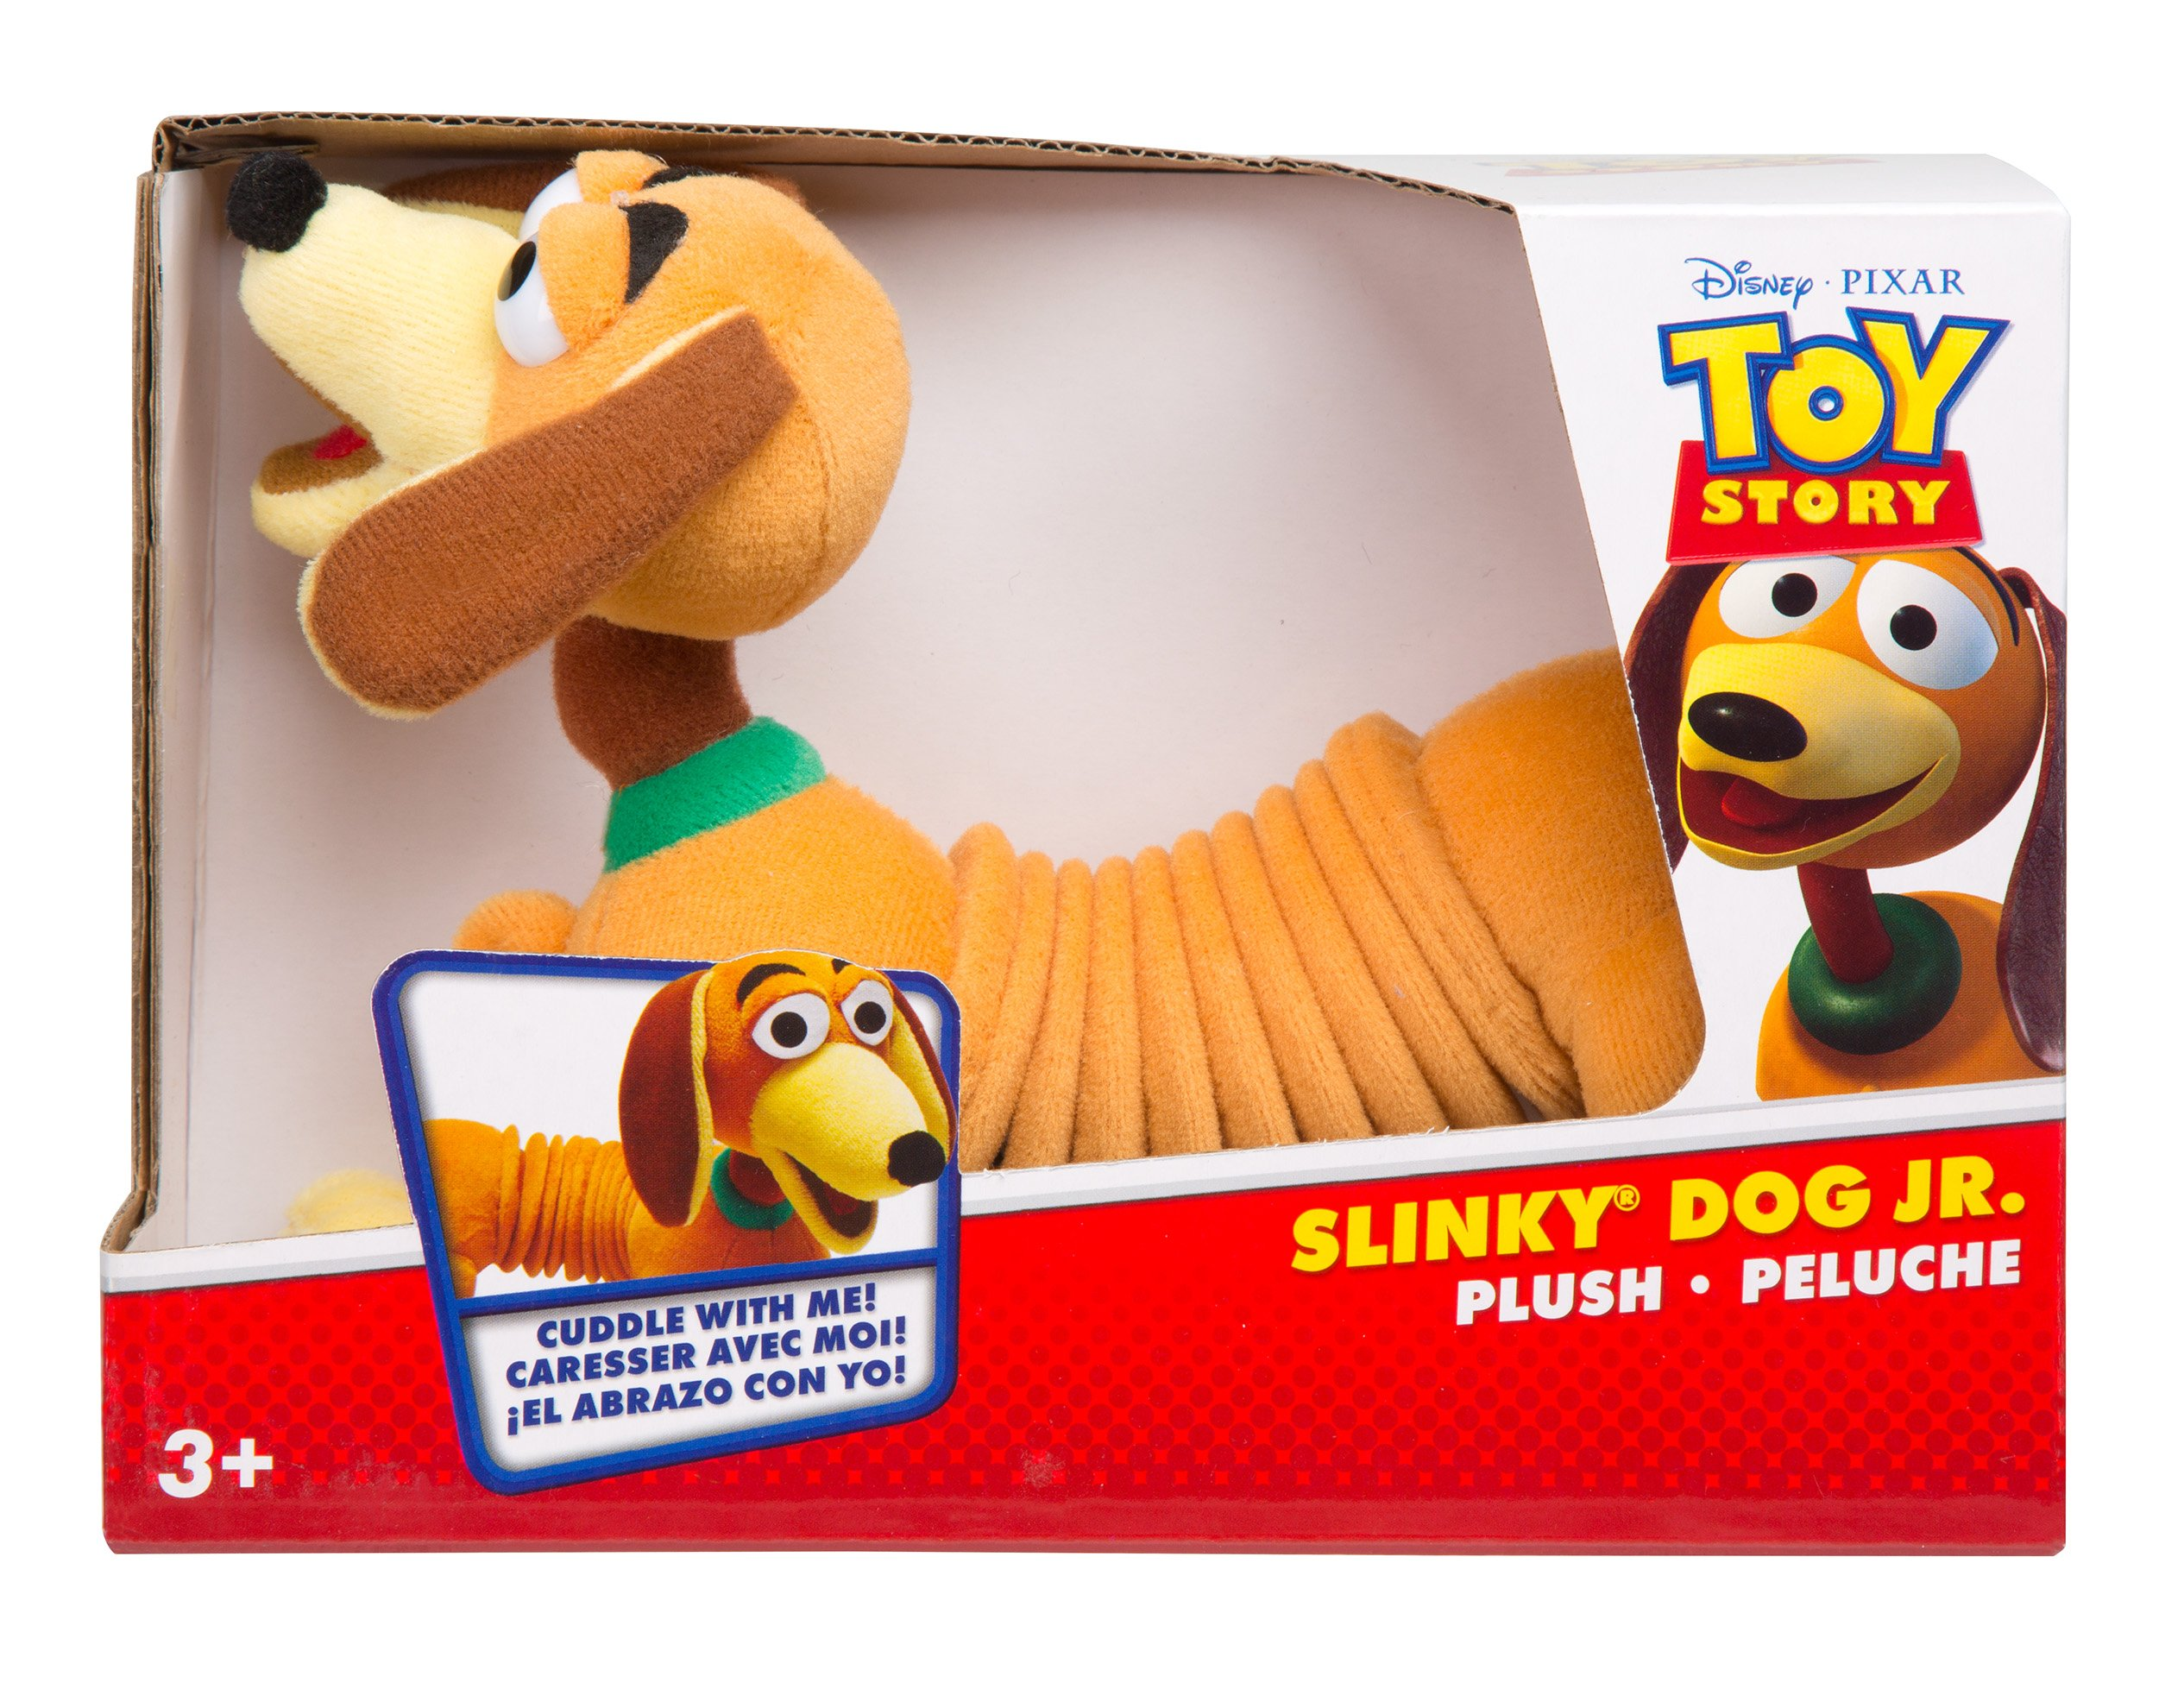 Disney Pixar Toy Story Slinky Dog Jr Plush by Slinky (Image #1)